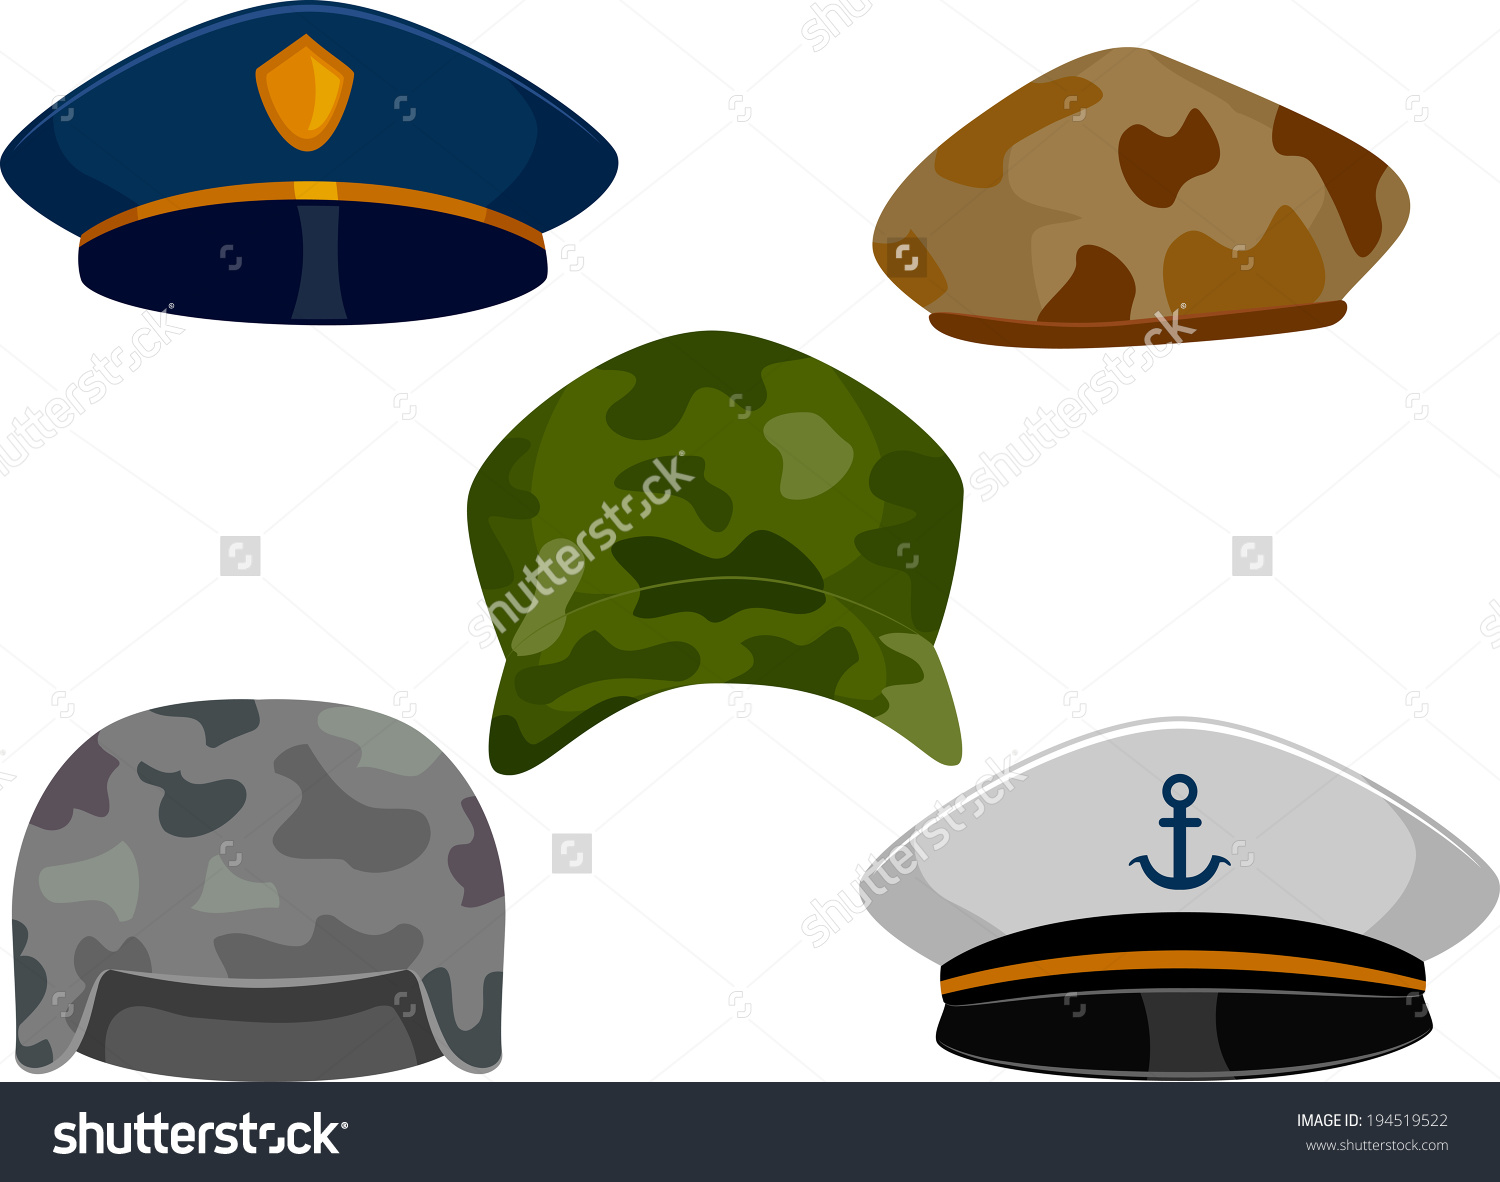 Llustration Featuring Different Types Hats Associated Stock Vector.